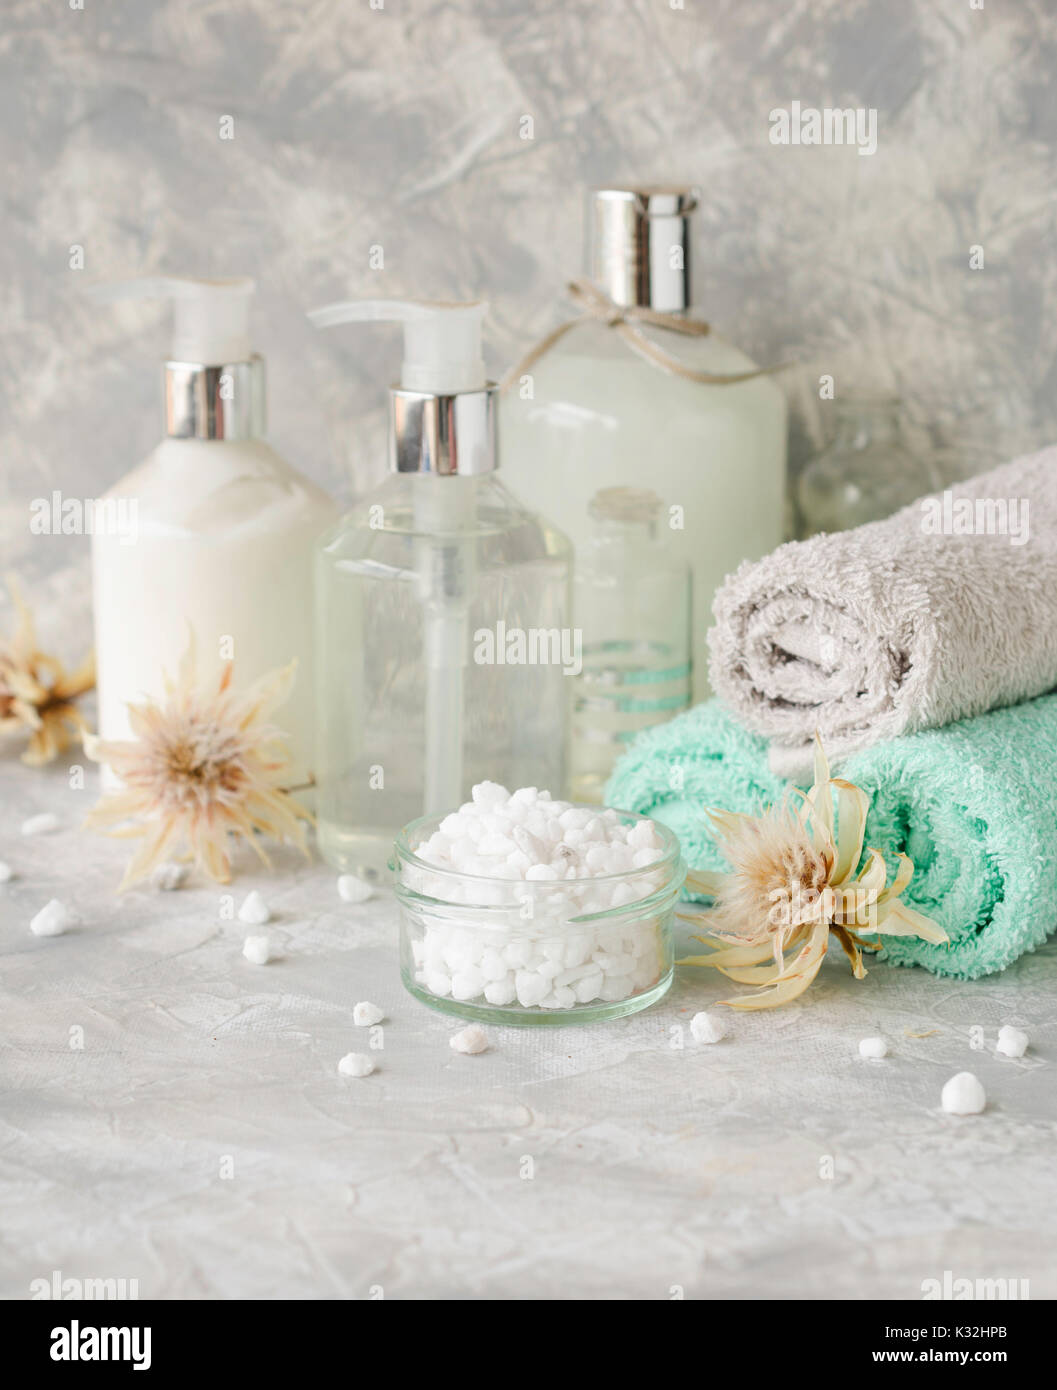 Bath Accessories Beauty Products On Stock Photos & Bath Accessories ...